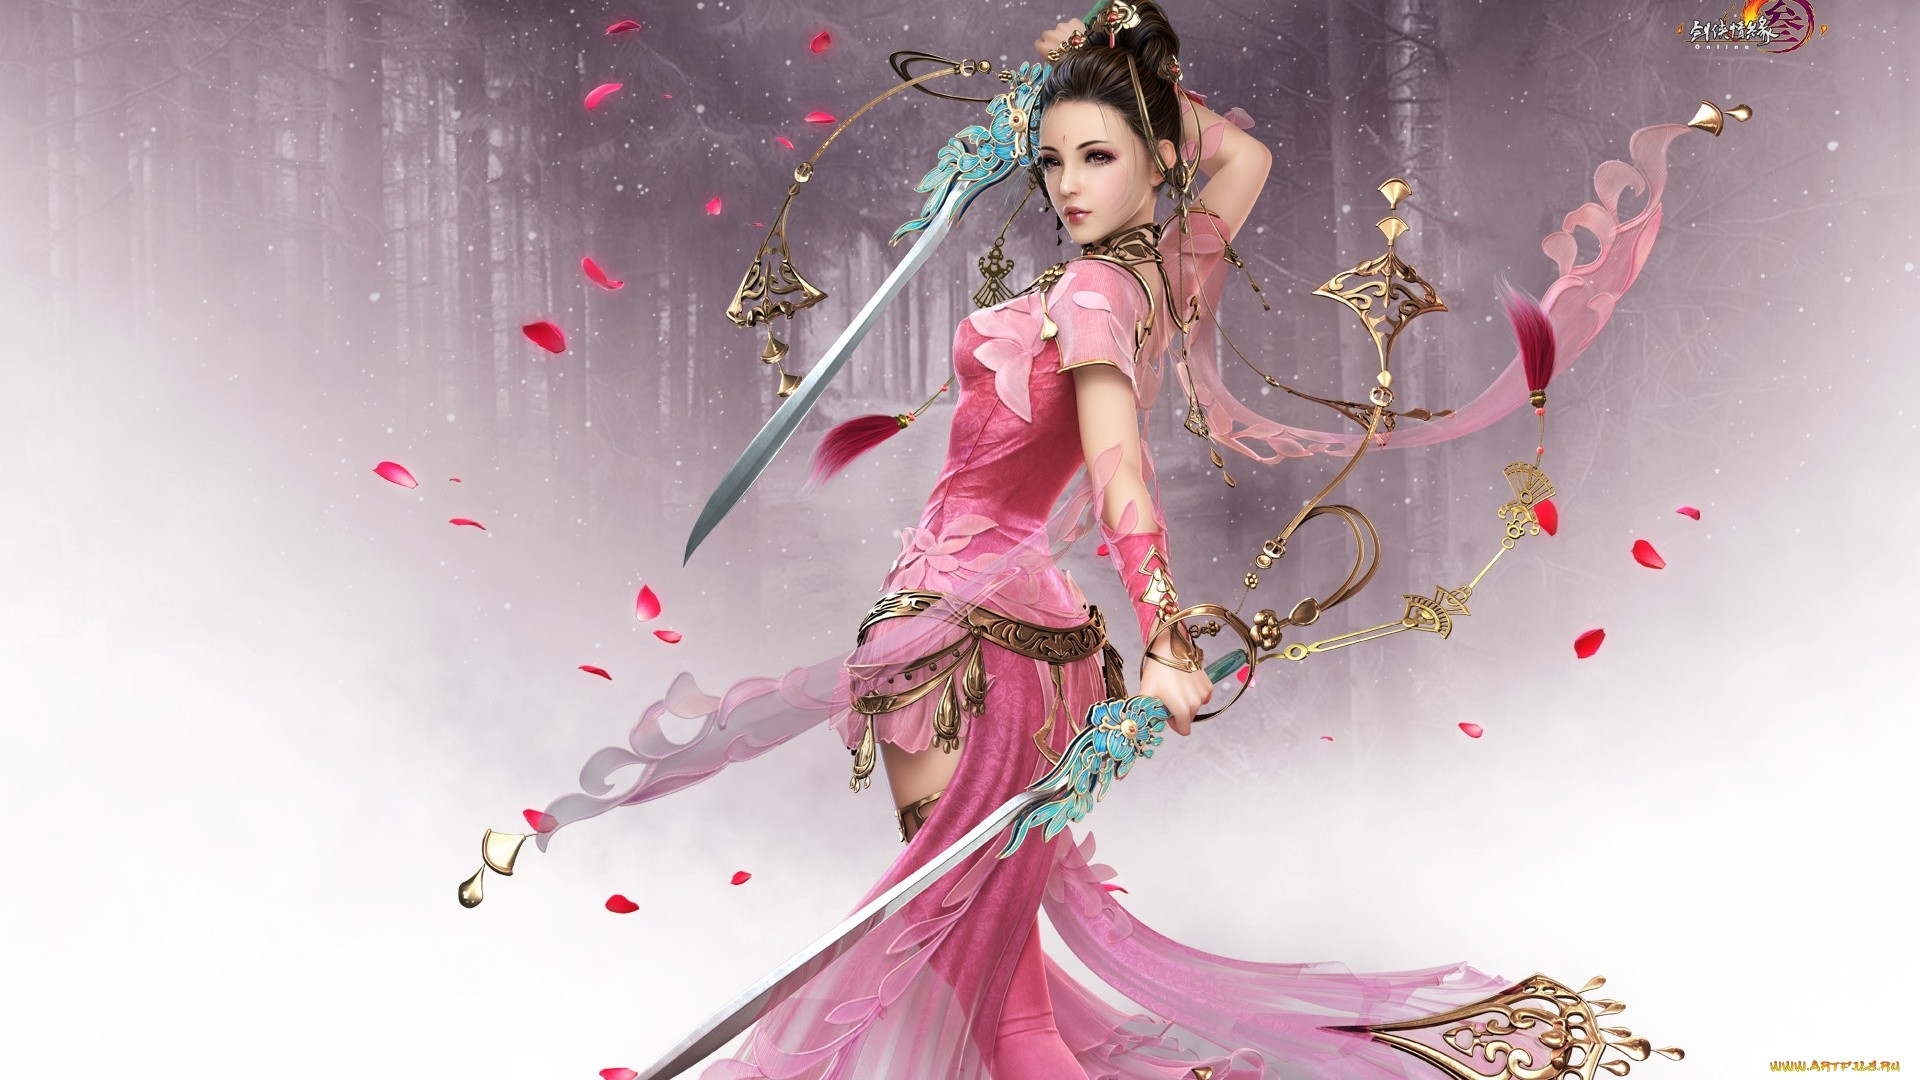 Fantasy Girl download nice wallpaper